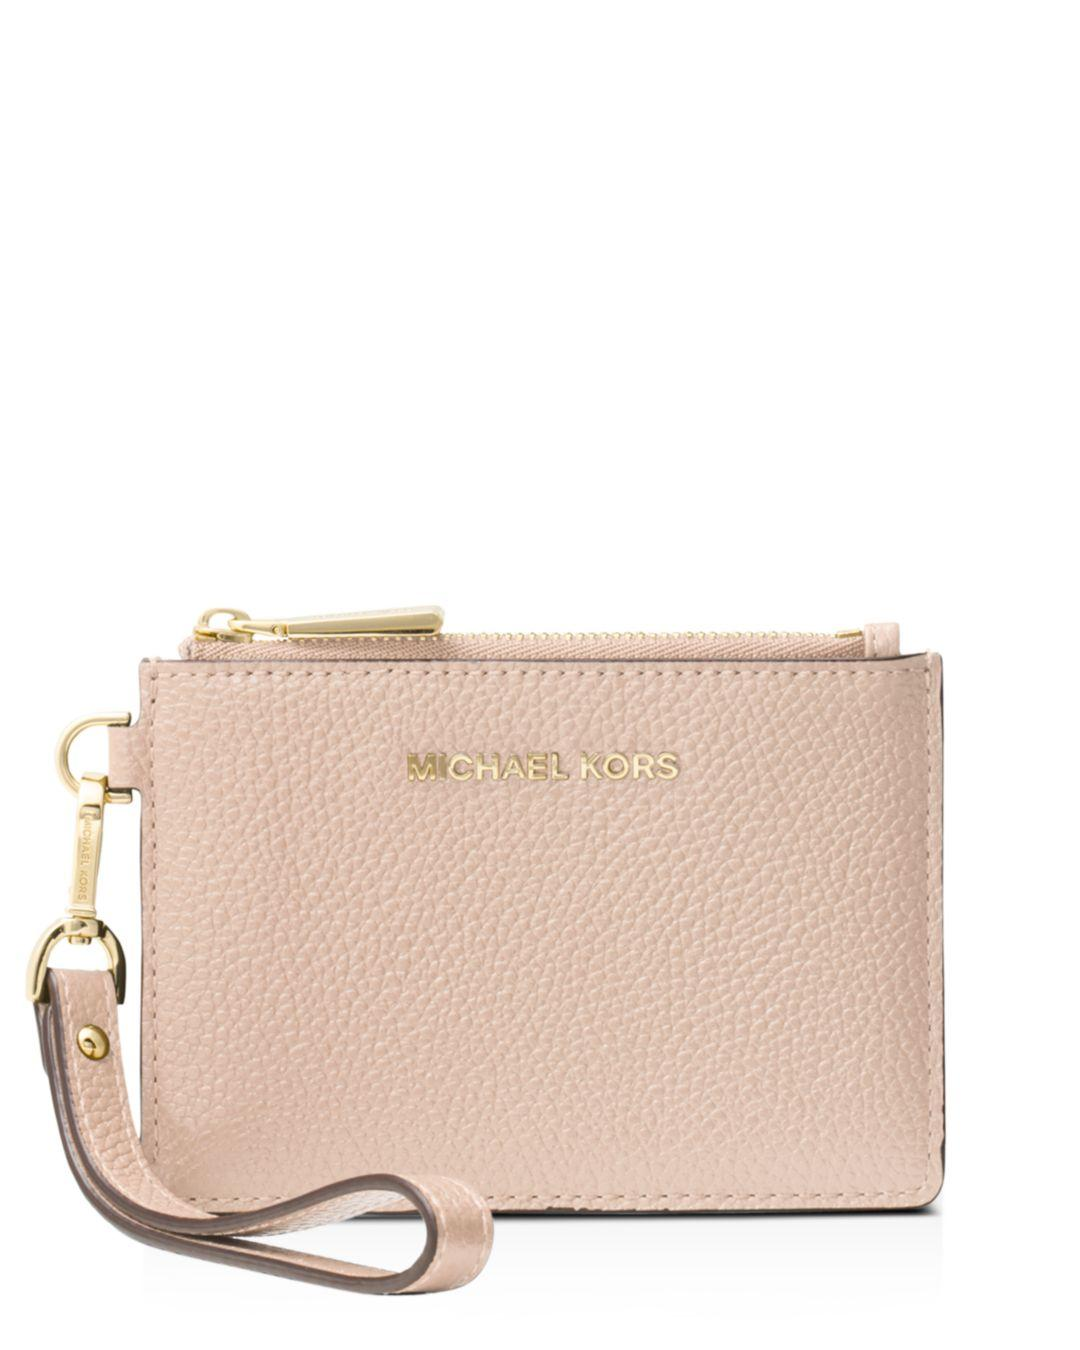 c2d7a4f2241d Michael Kors Mercer Small Leather Coin Purse in Pink - Lyst